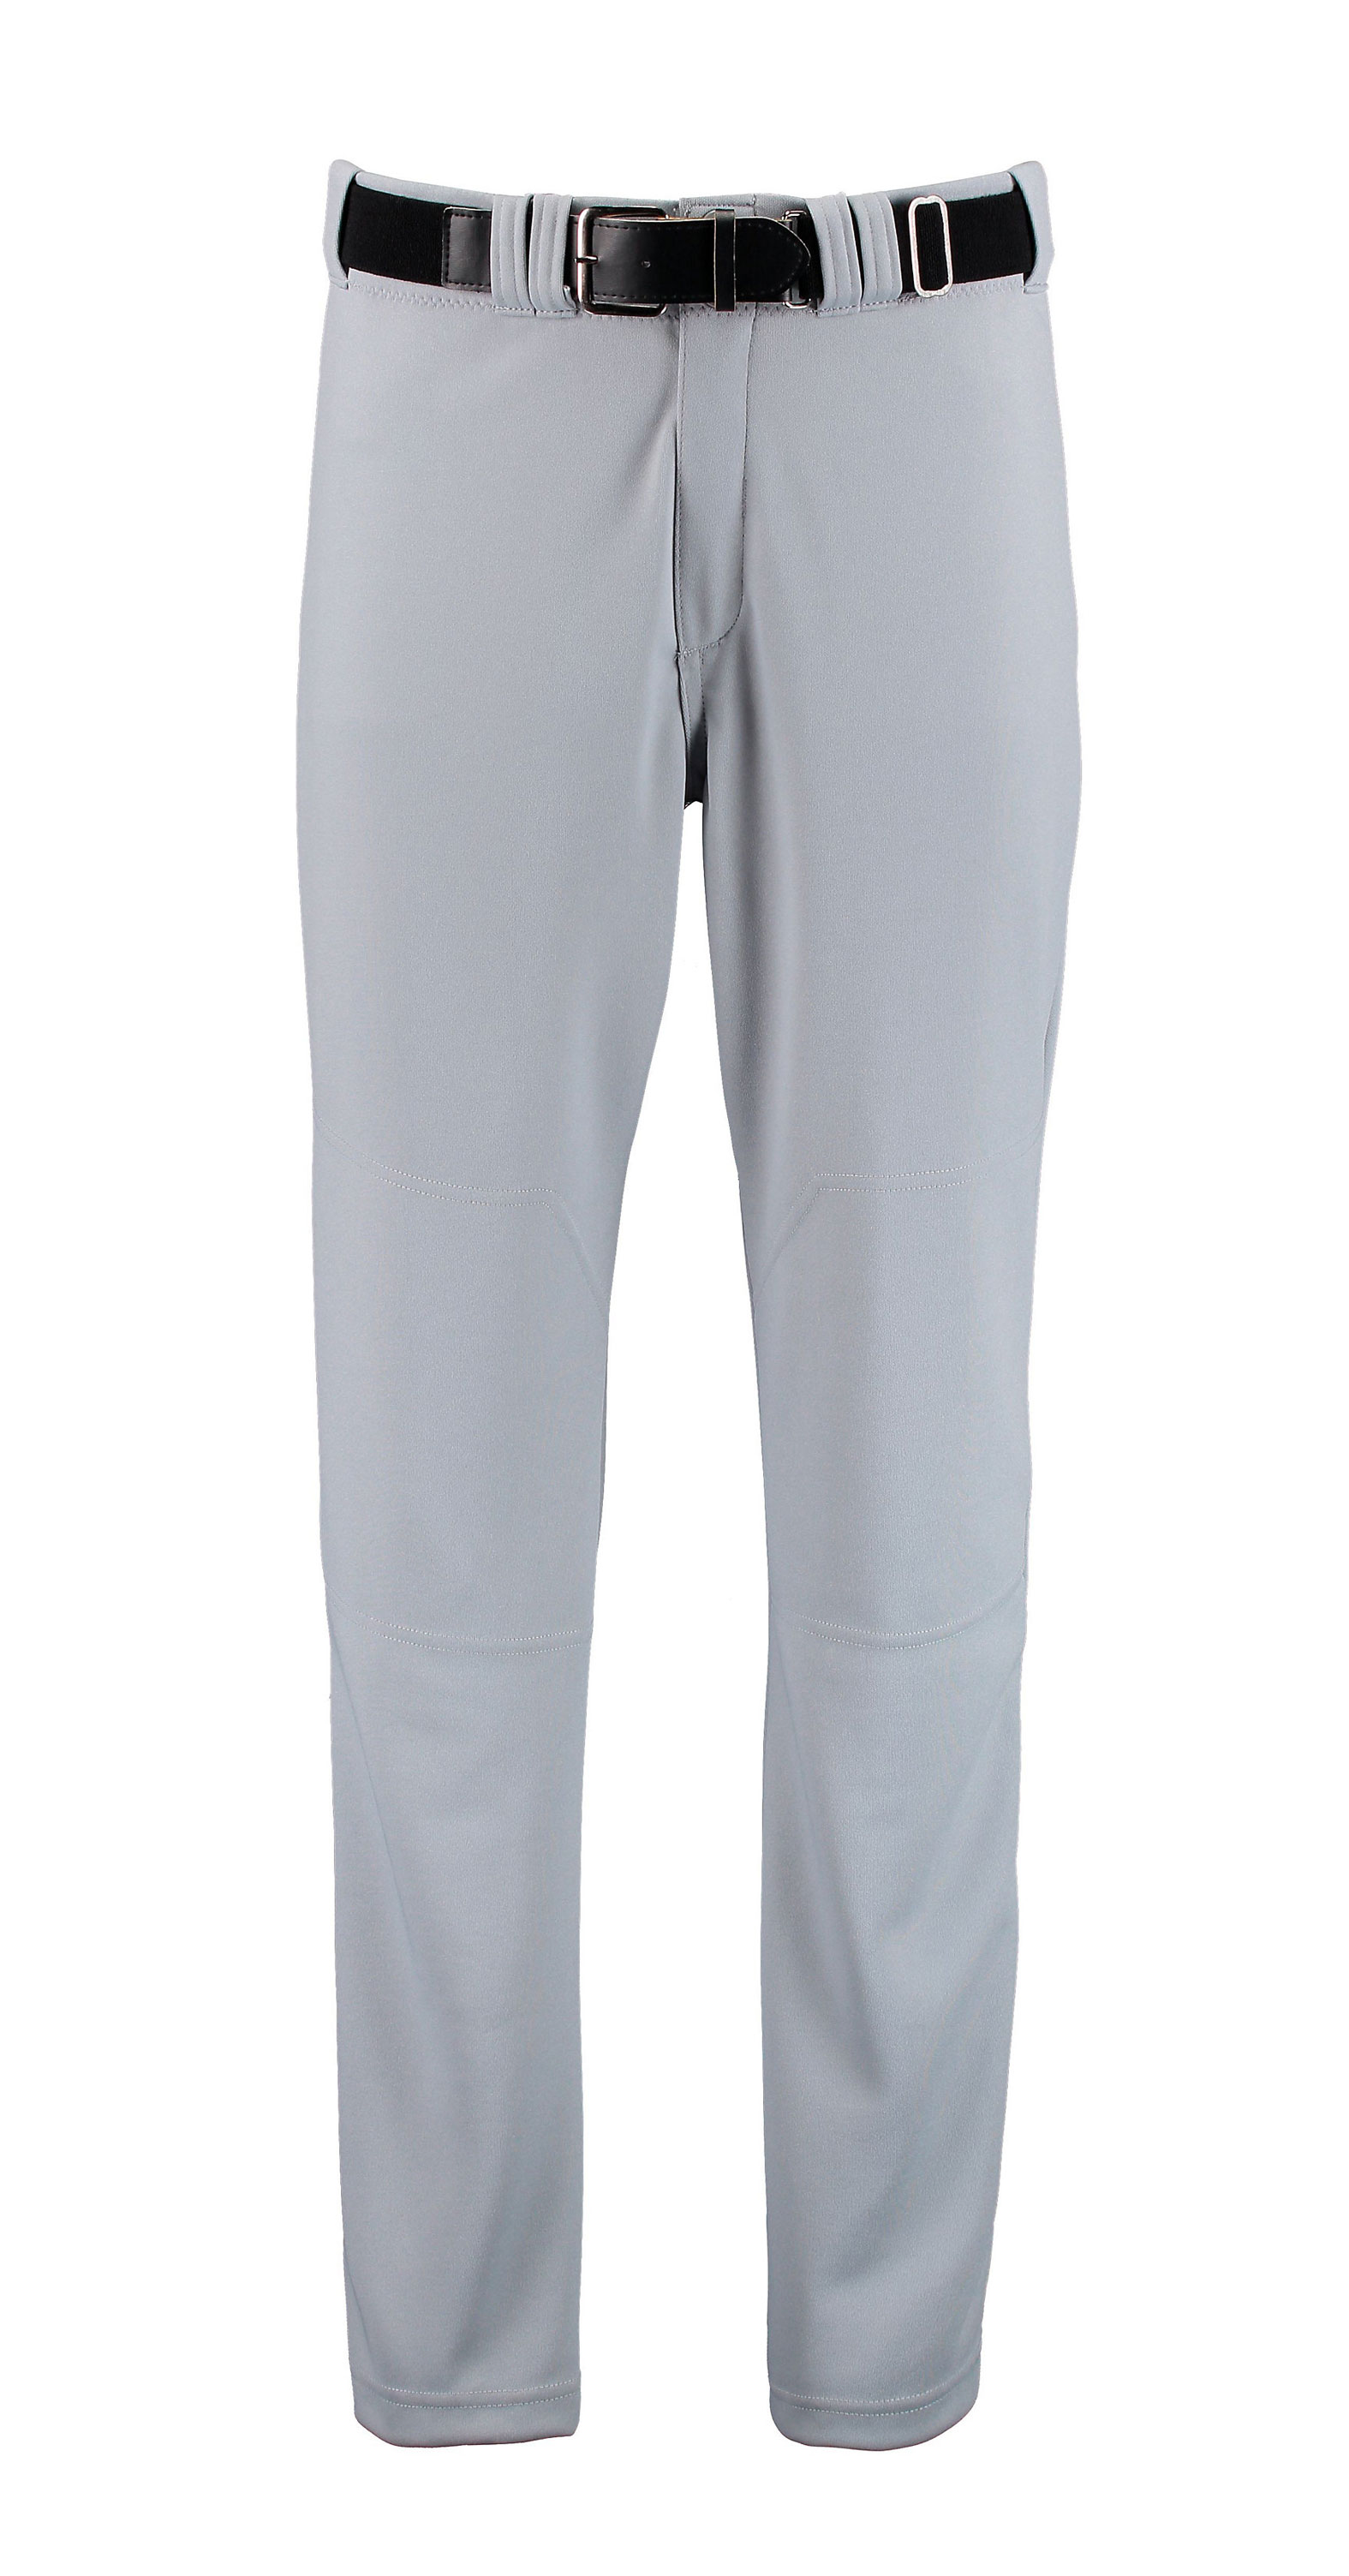 Russell Adult Diamond Fit Series Pant